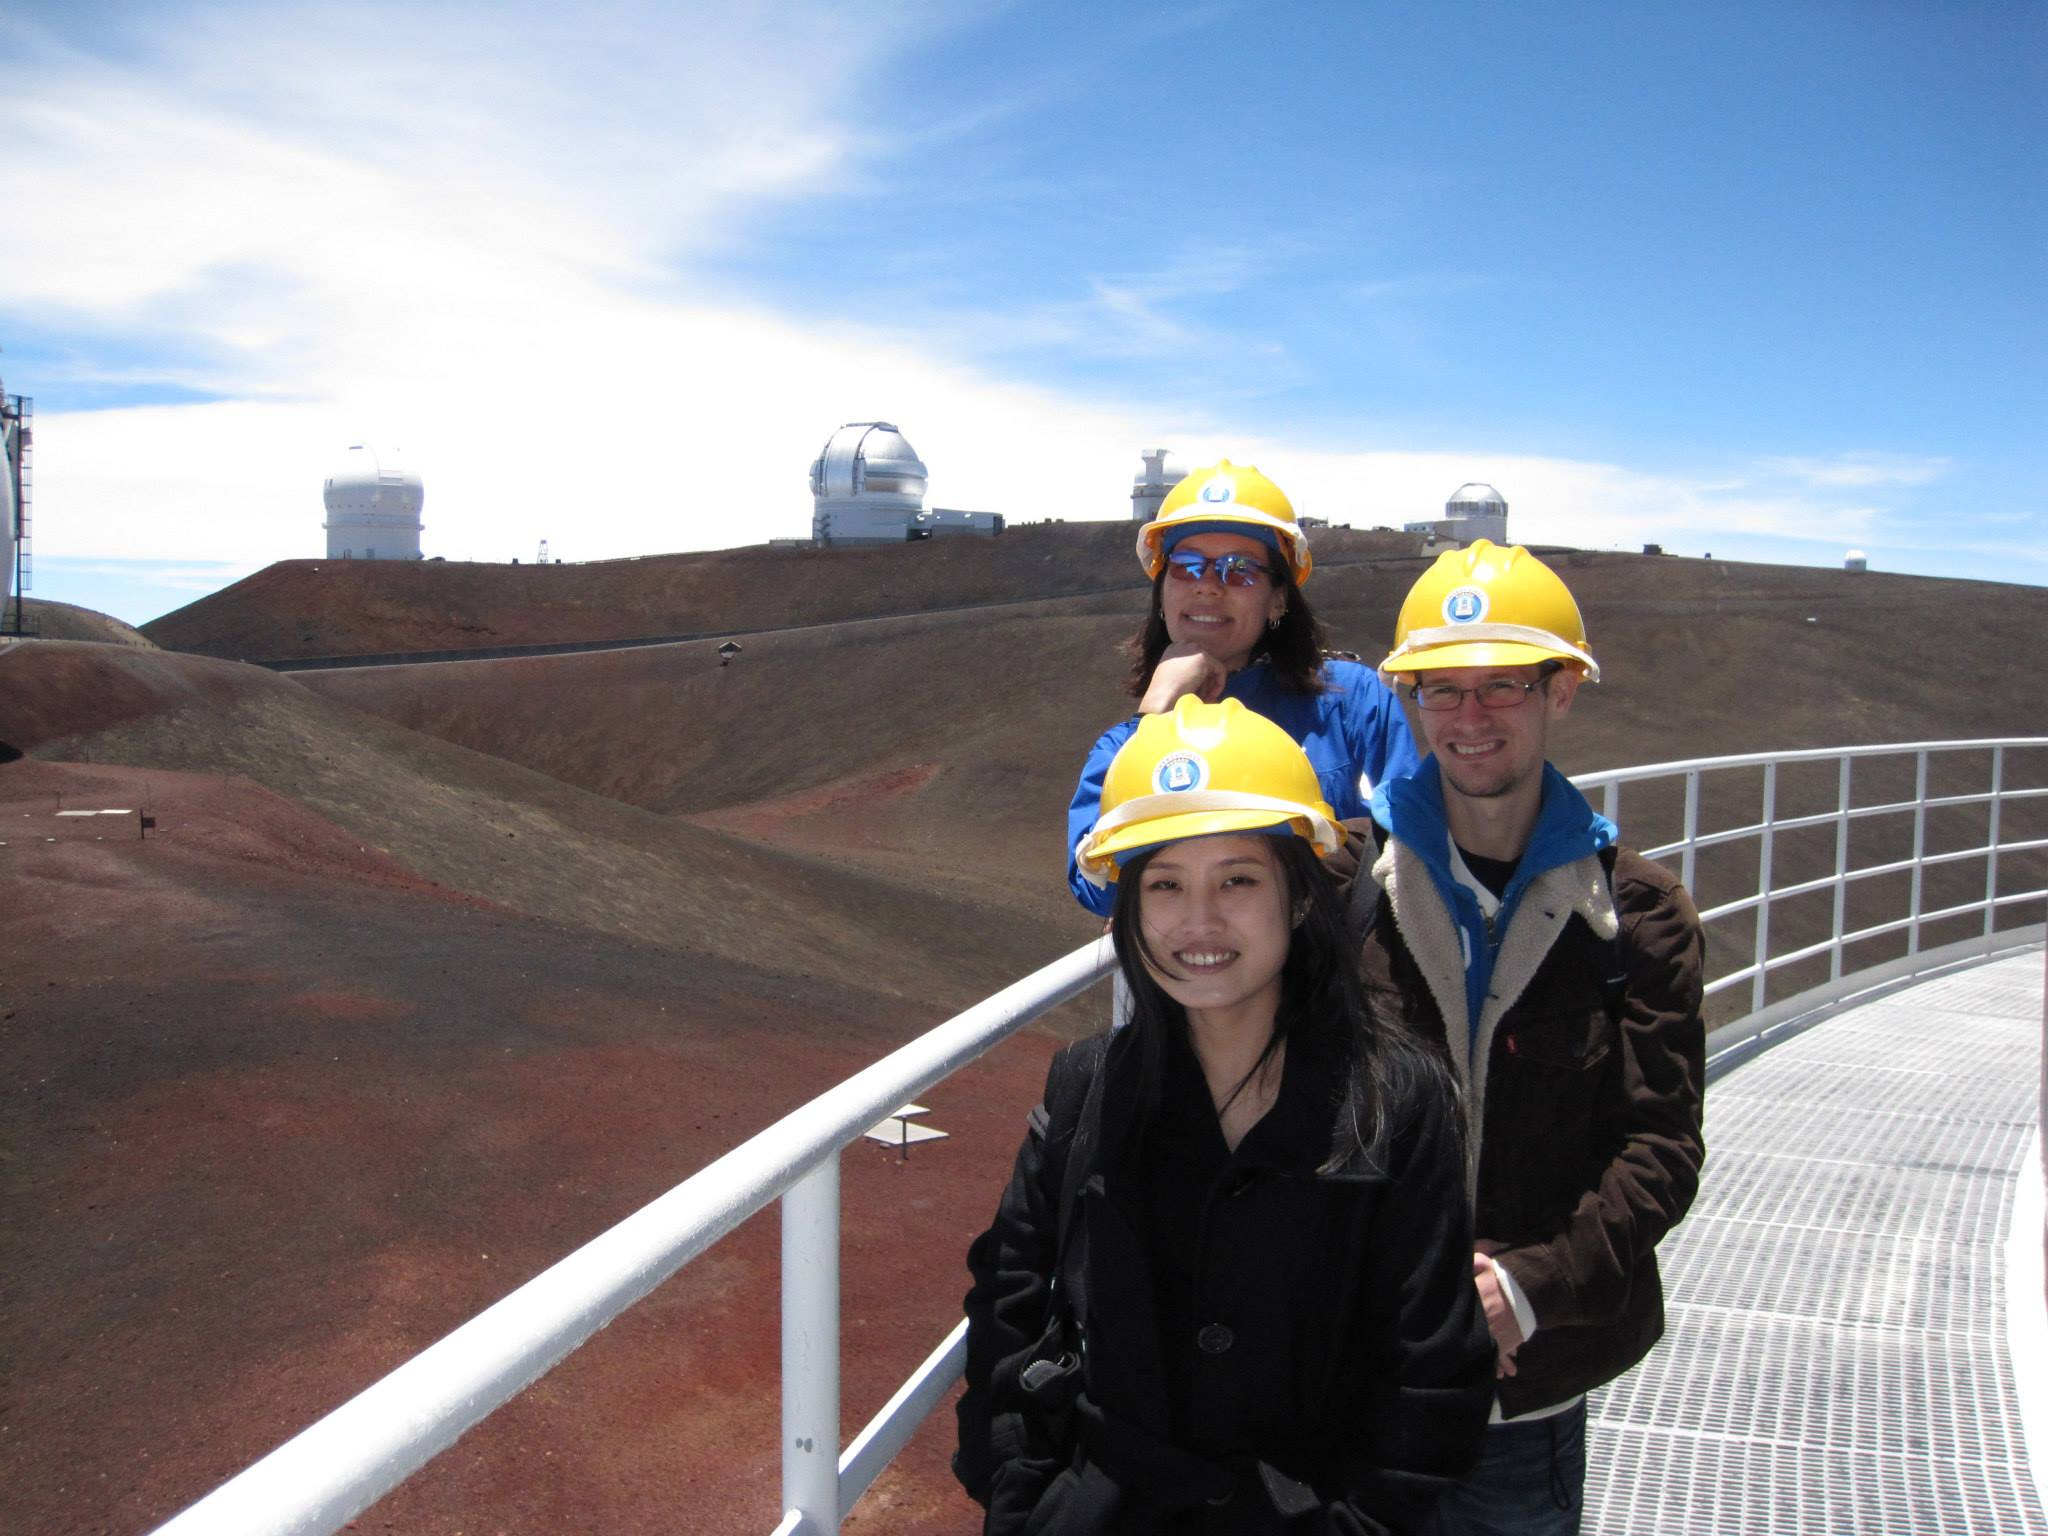 Cooksey with students on the catwalk at the Subaru telescope on Maunakea.